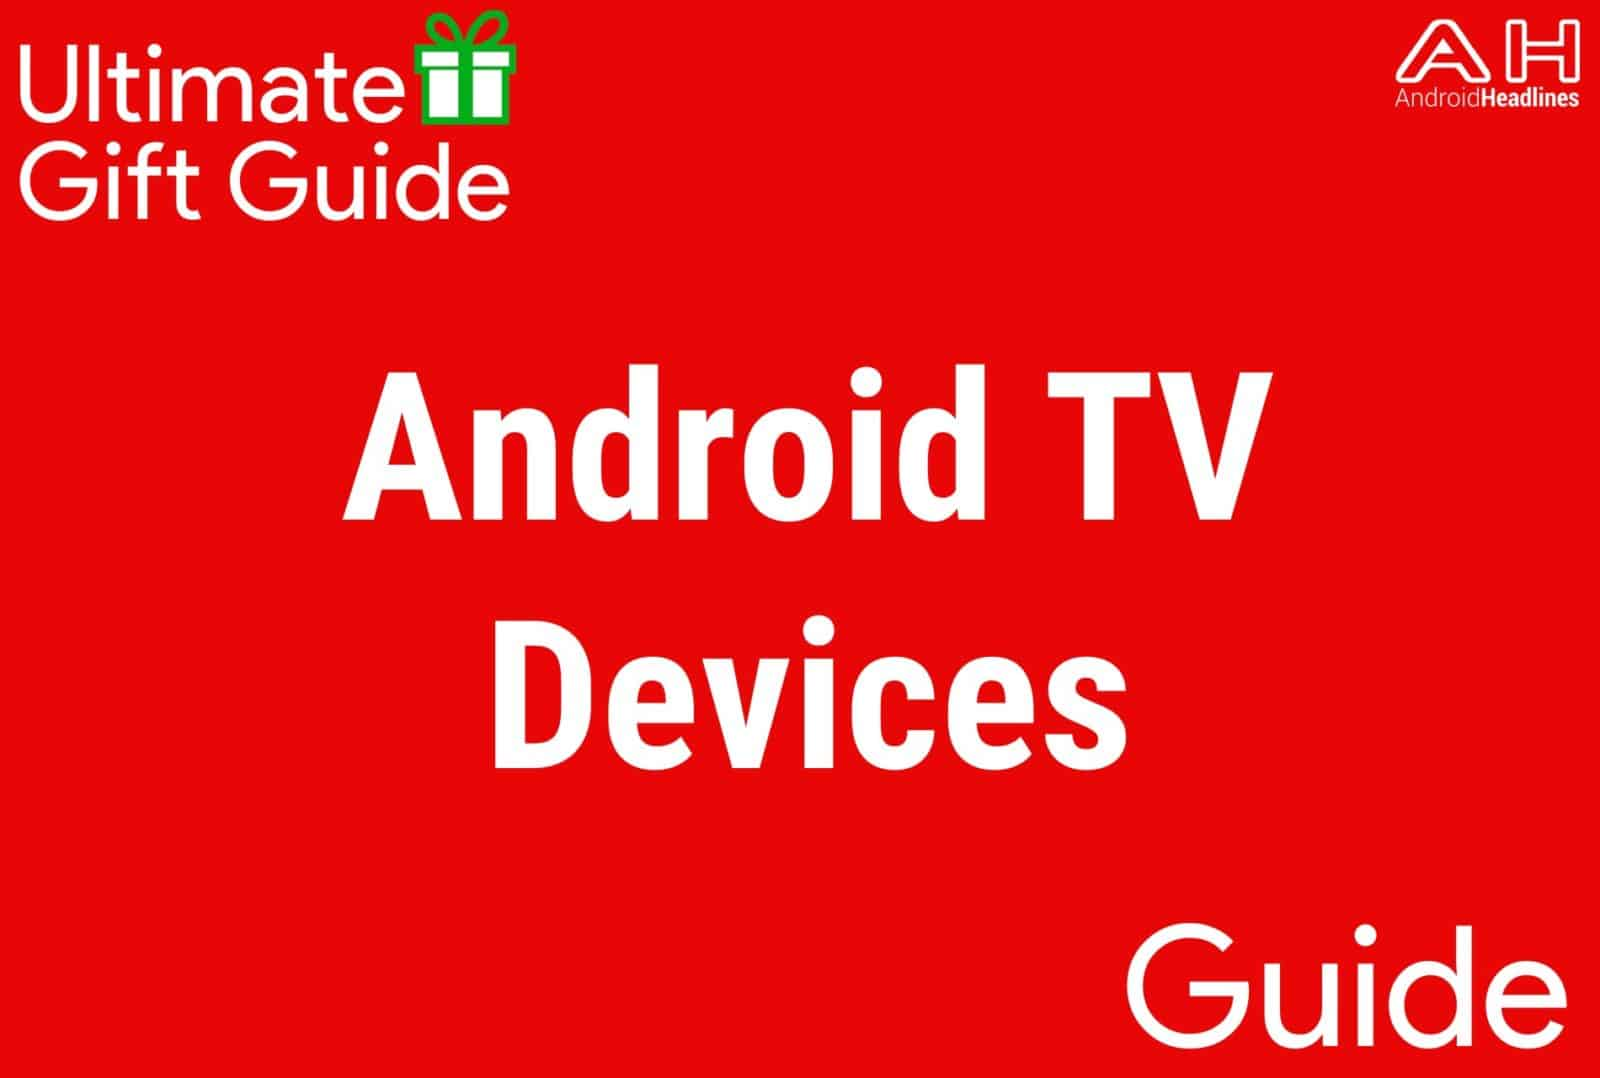 Android TV Devices - Gift Guide